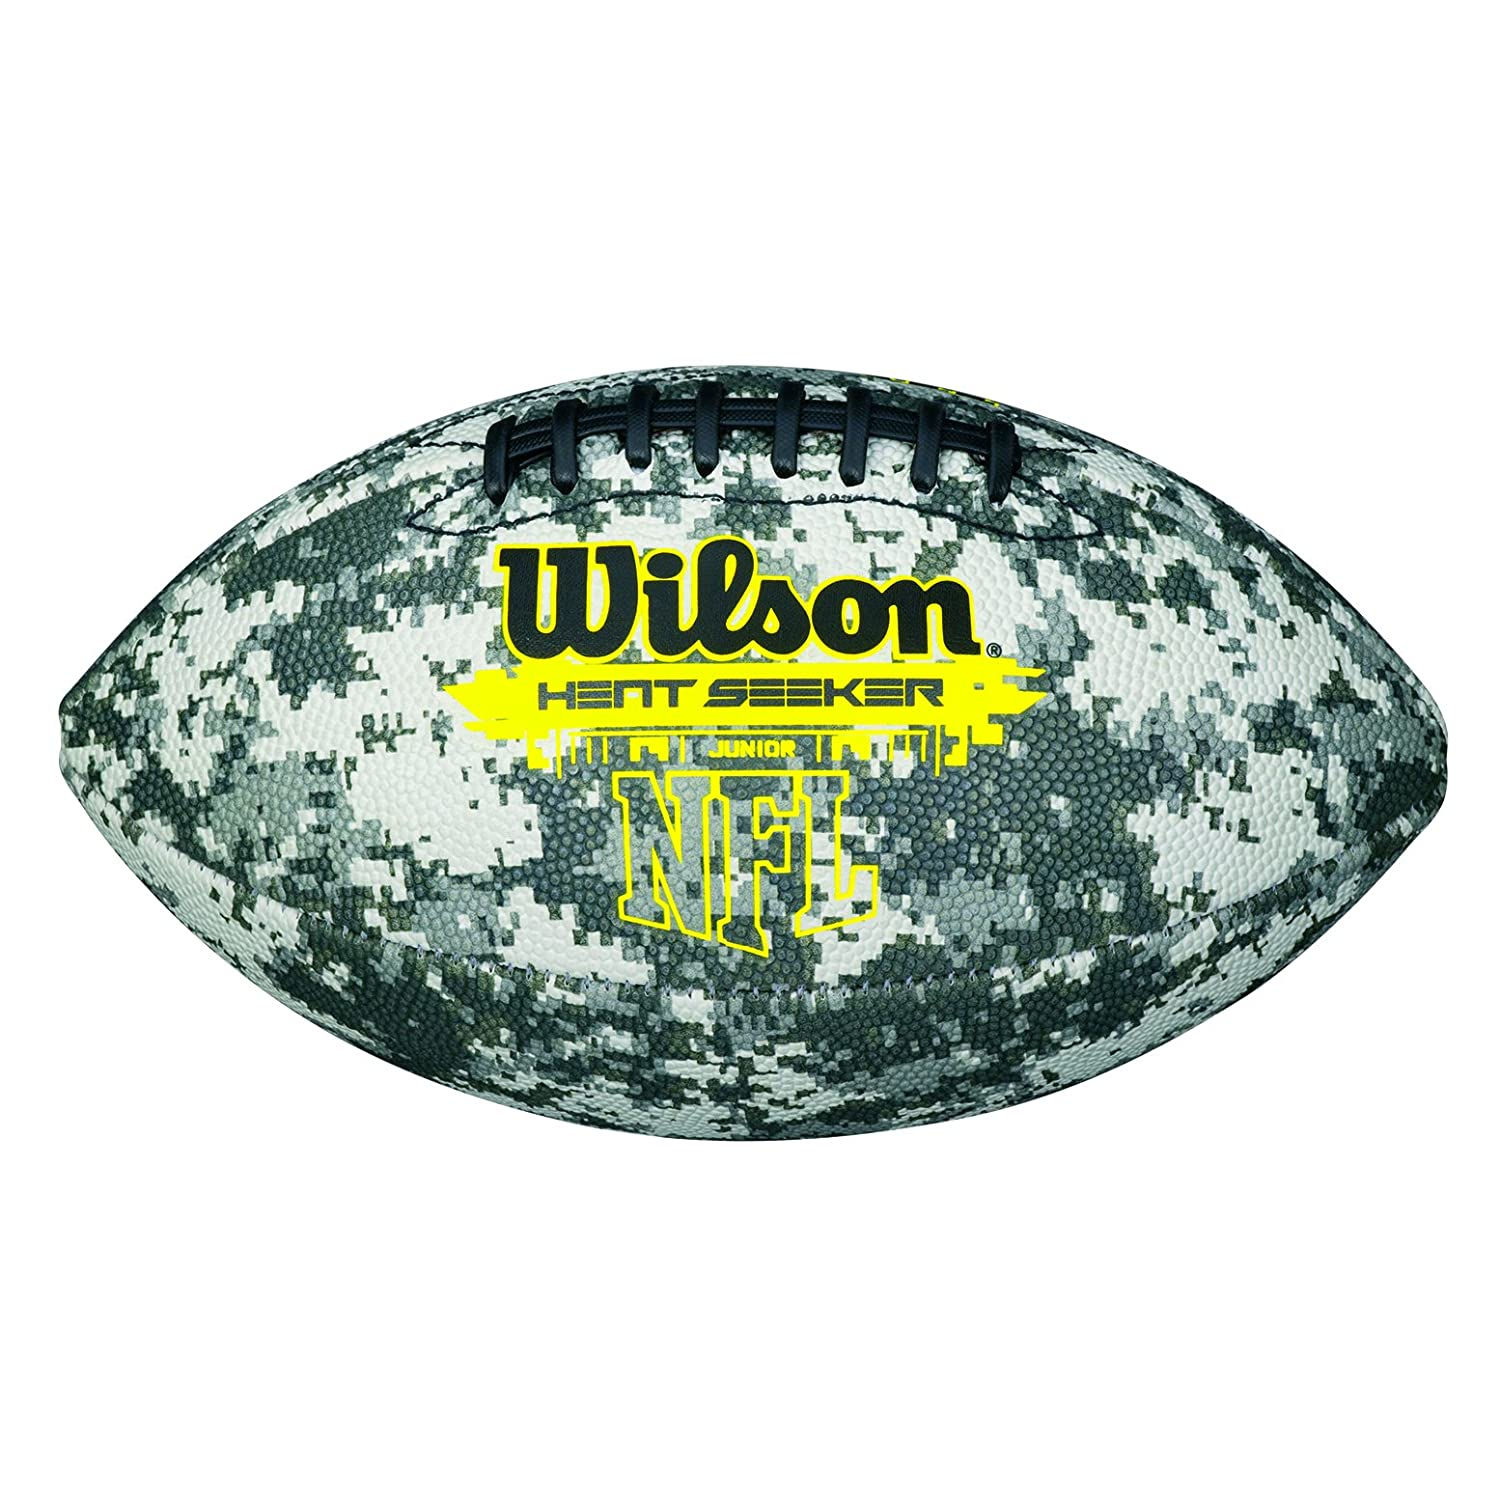 Wilson American Football, Recreational Use, Kids Size, HEAT SEEKER, Digi Camo, WTF1562XD Red/Red WTF1608XB